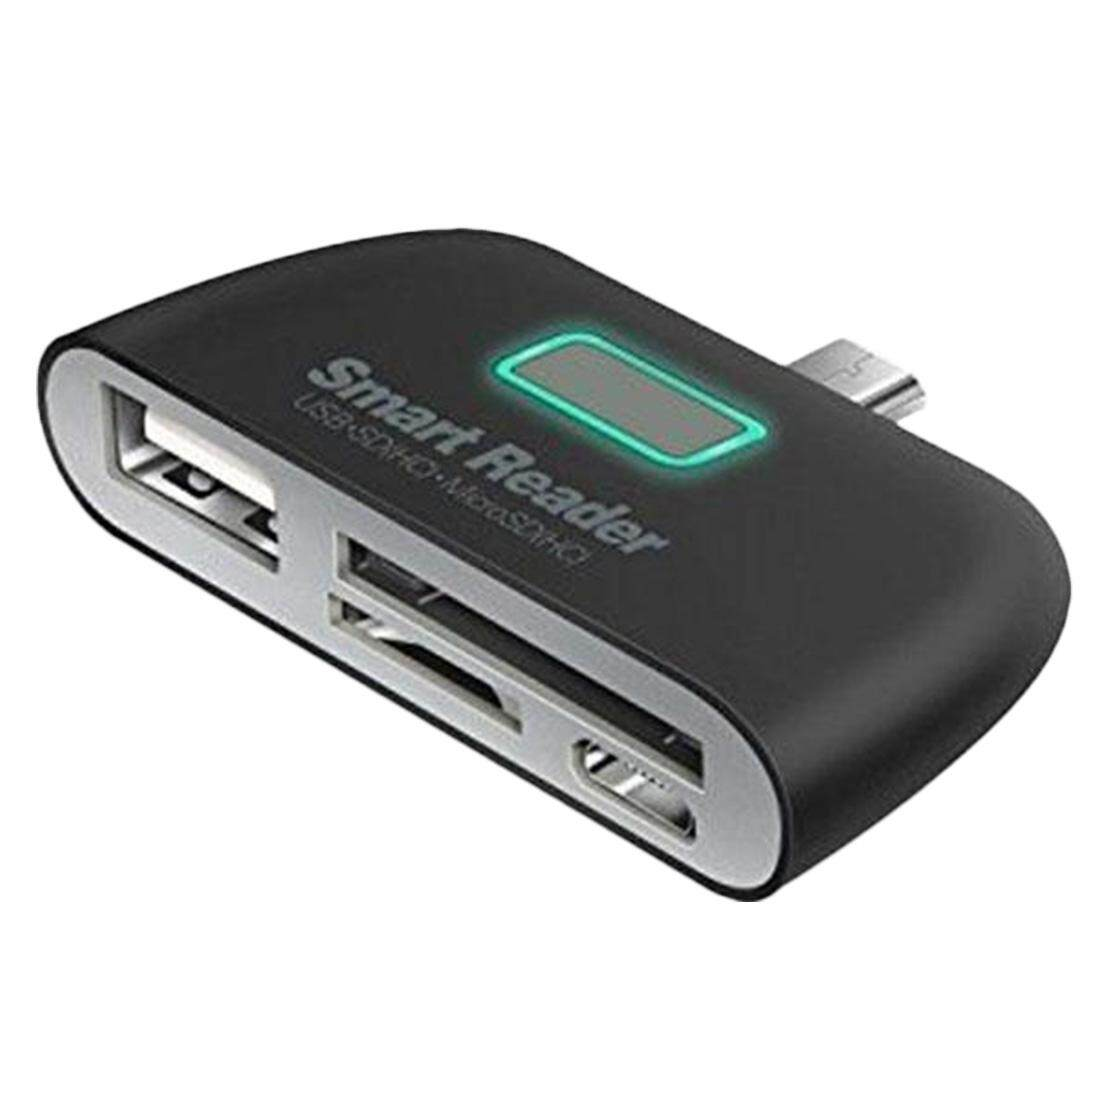 Smart Card Reader Adapter Mini 4 In 1 Otg/Tf With Micro Usb Charge Port For Andriod Phone Tablet